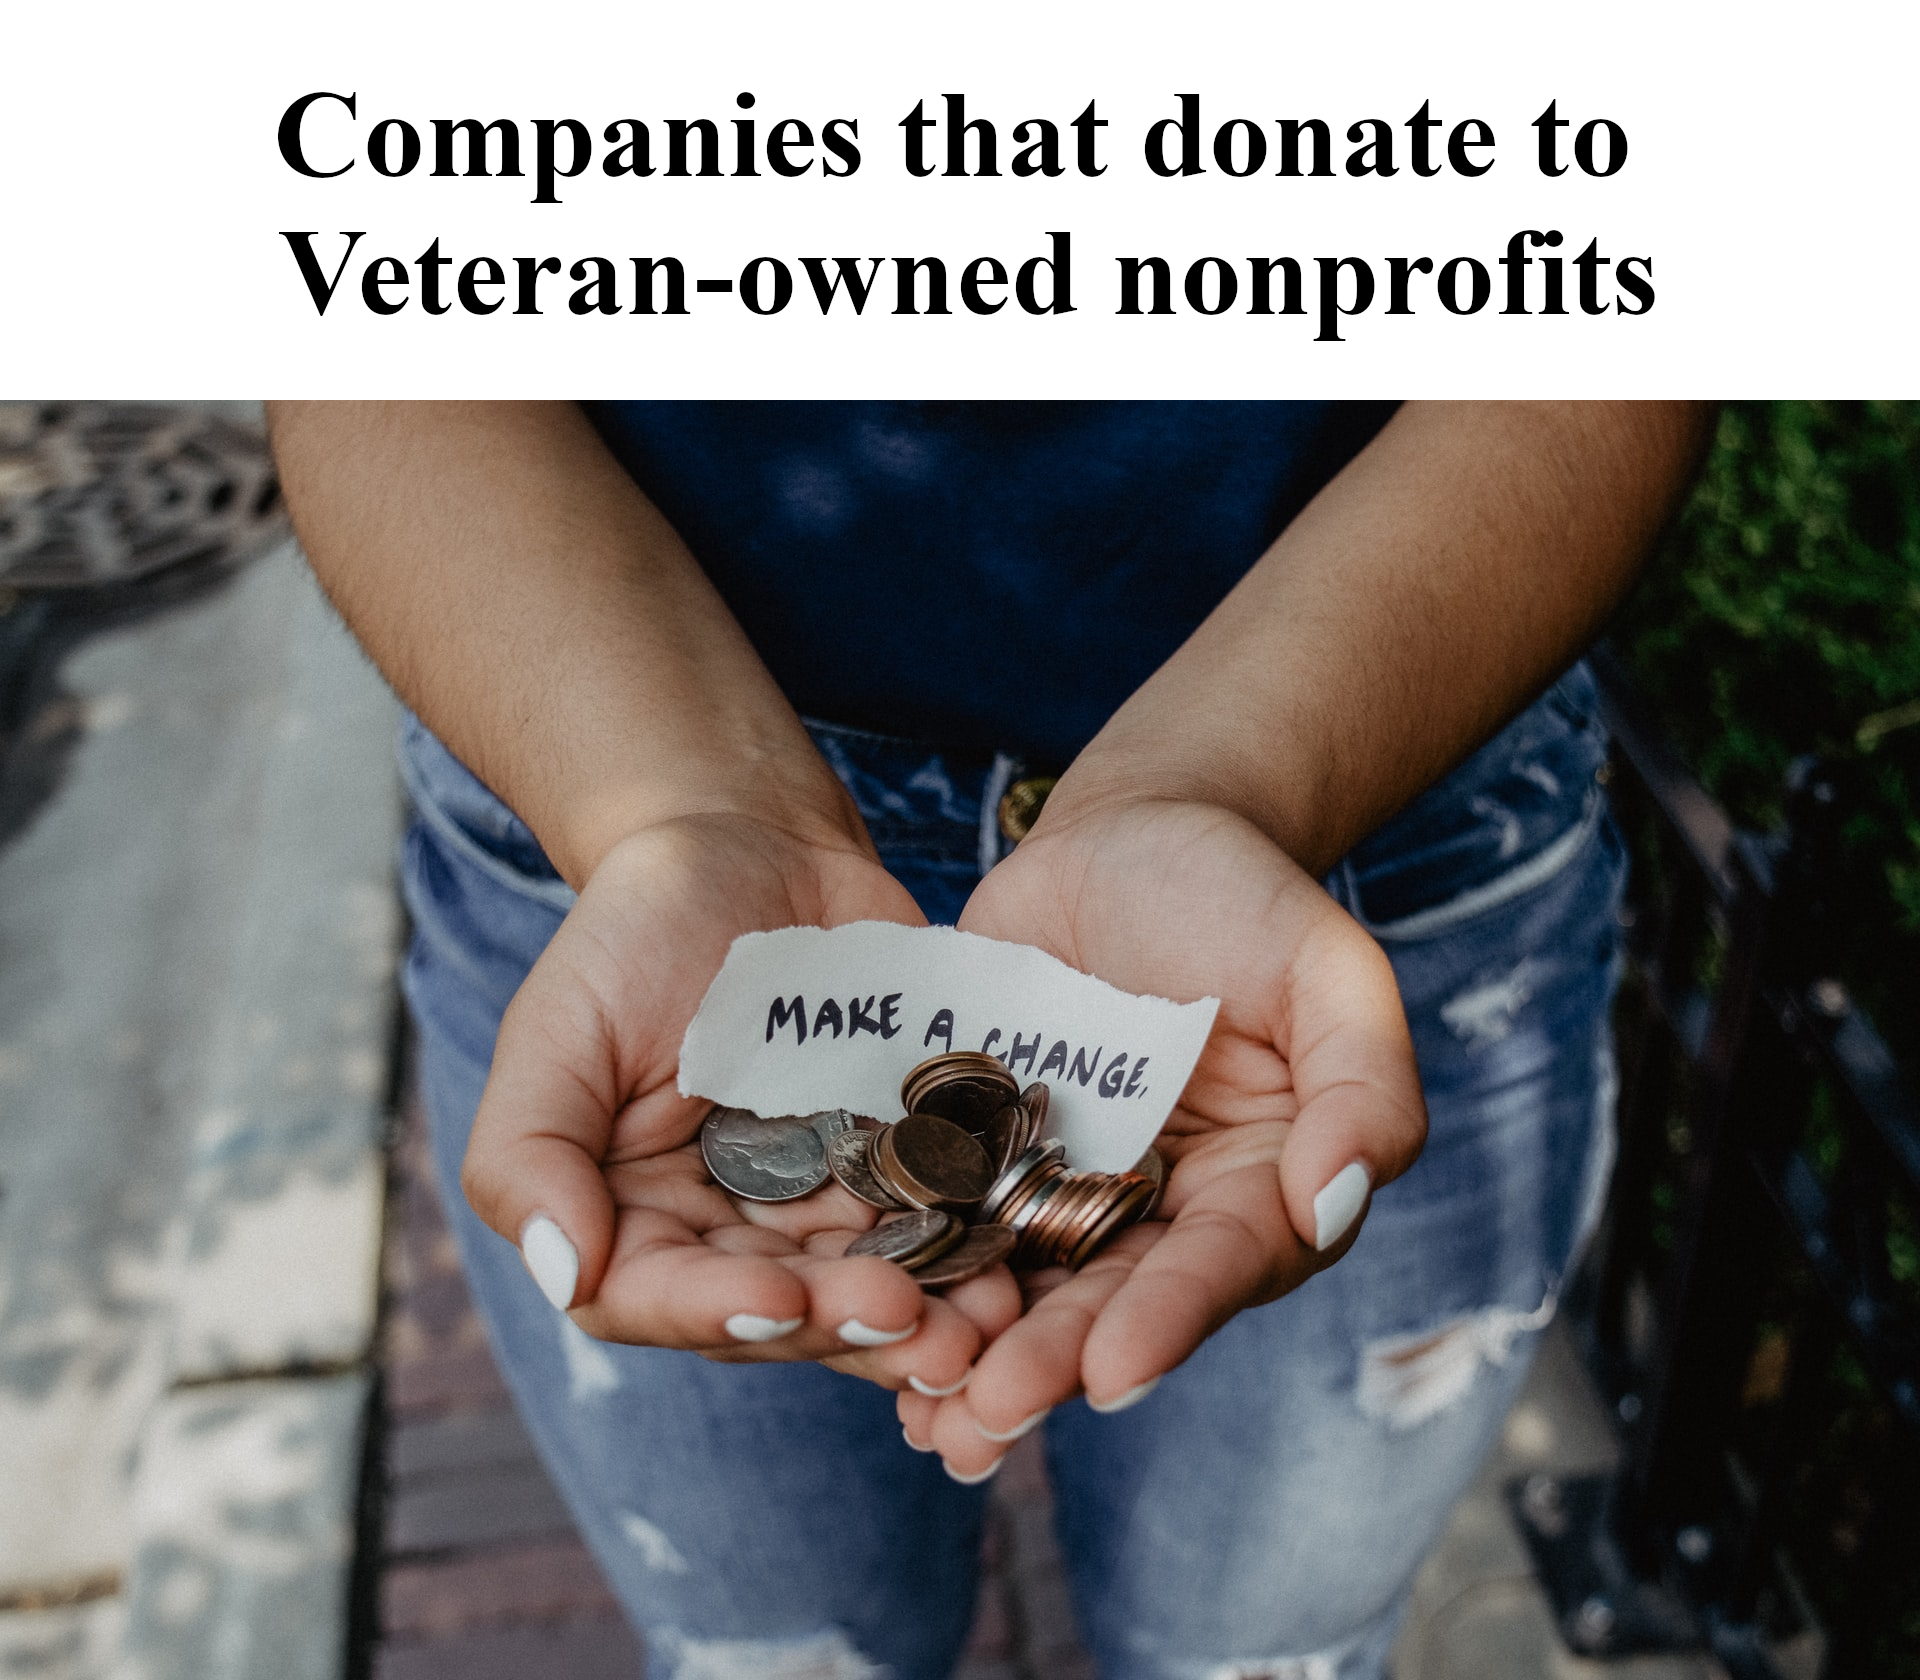 Companies that donate to Veteran-owned nonprofits